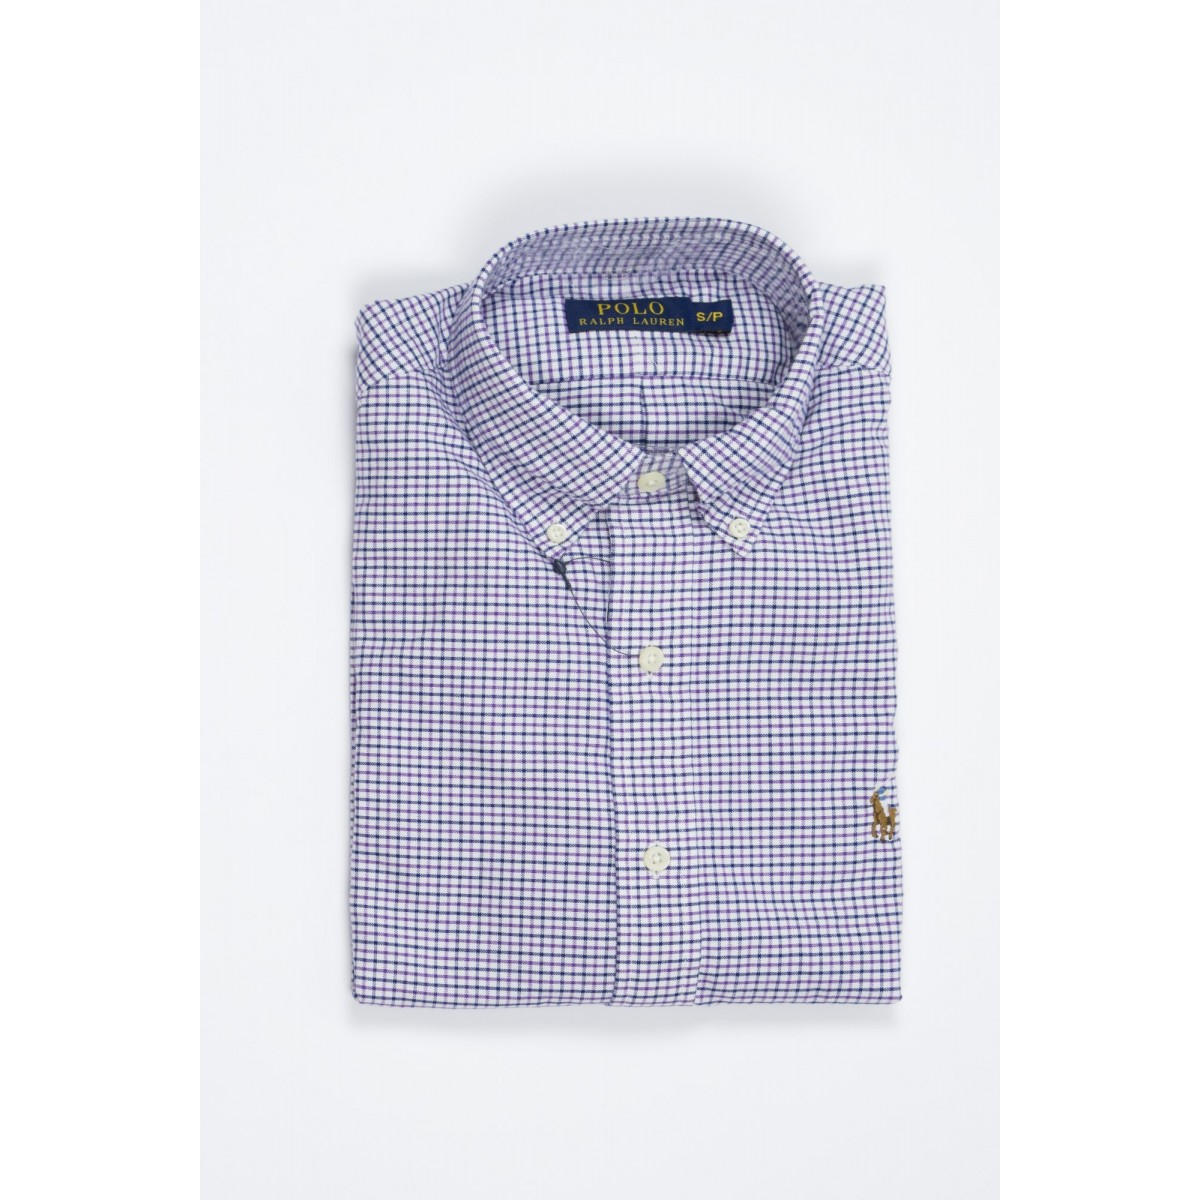 Shirt Polo Ralph Lauren Man - A04Wbdbdc0X10